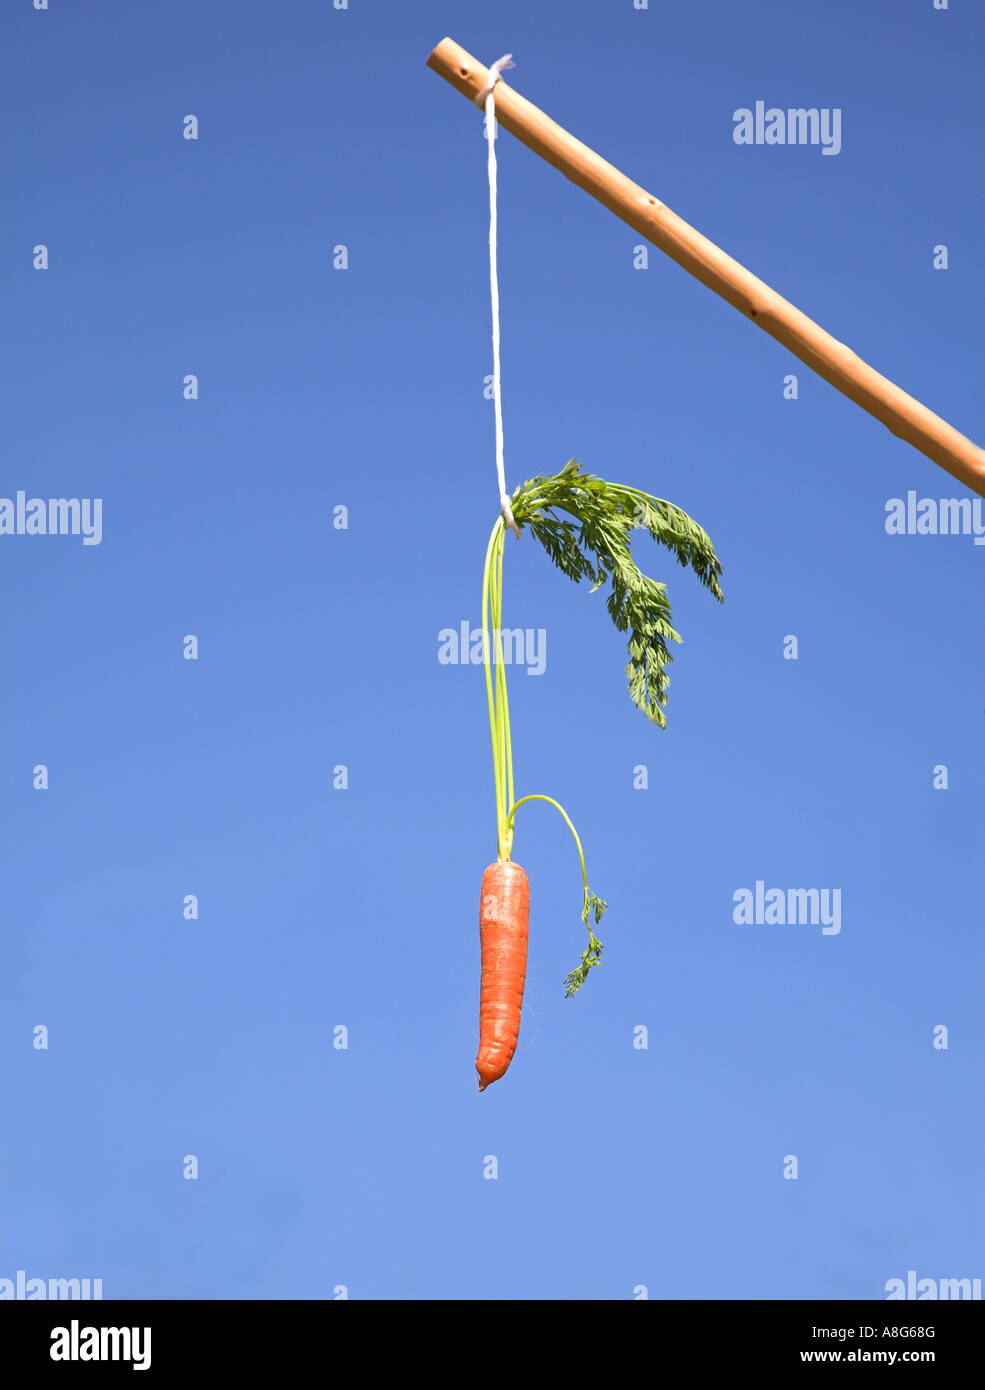 Carrot and stick. - Stock Image